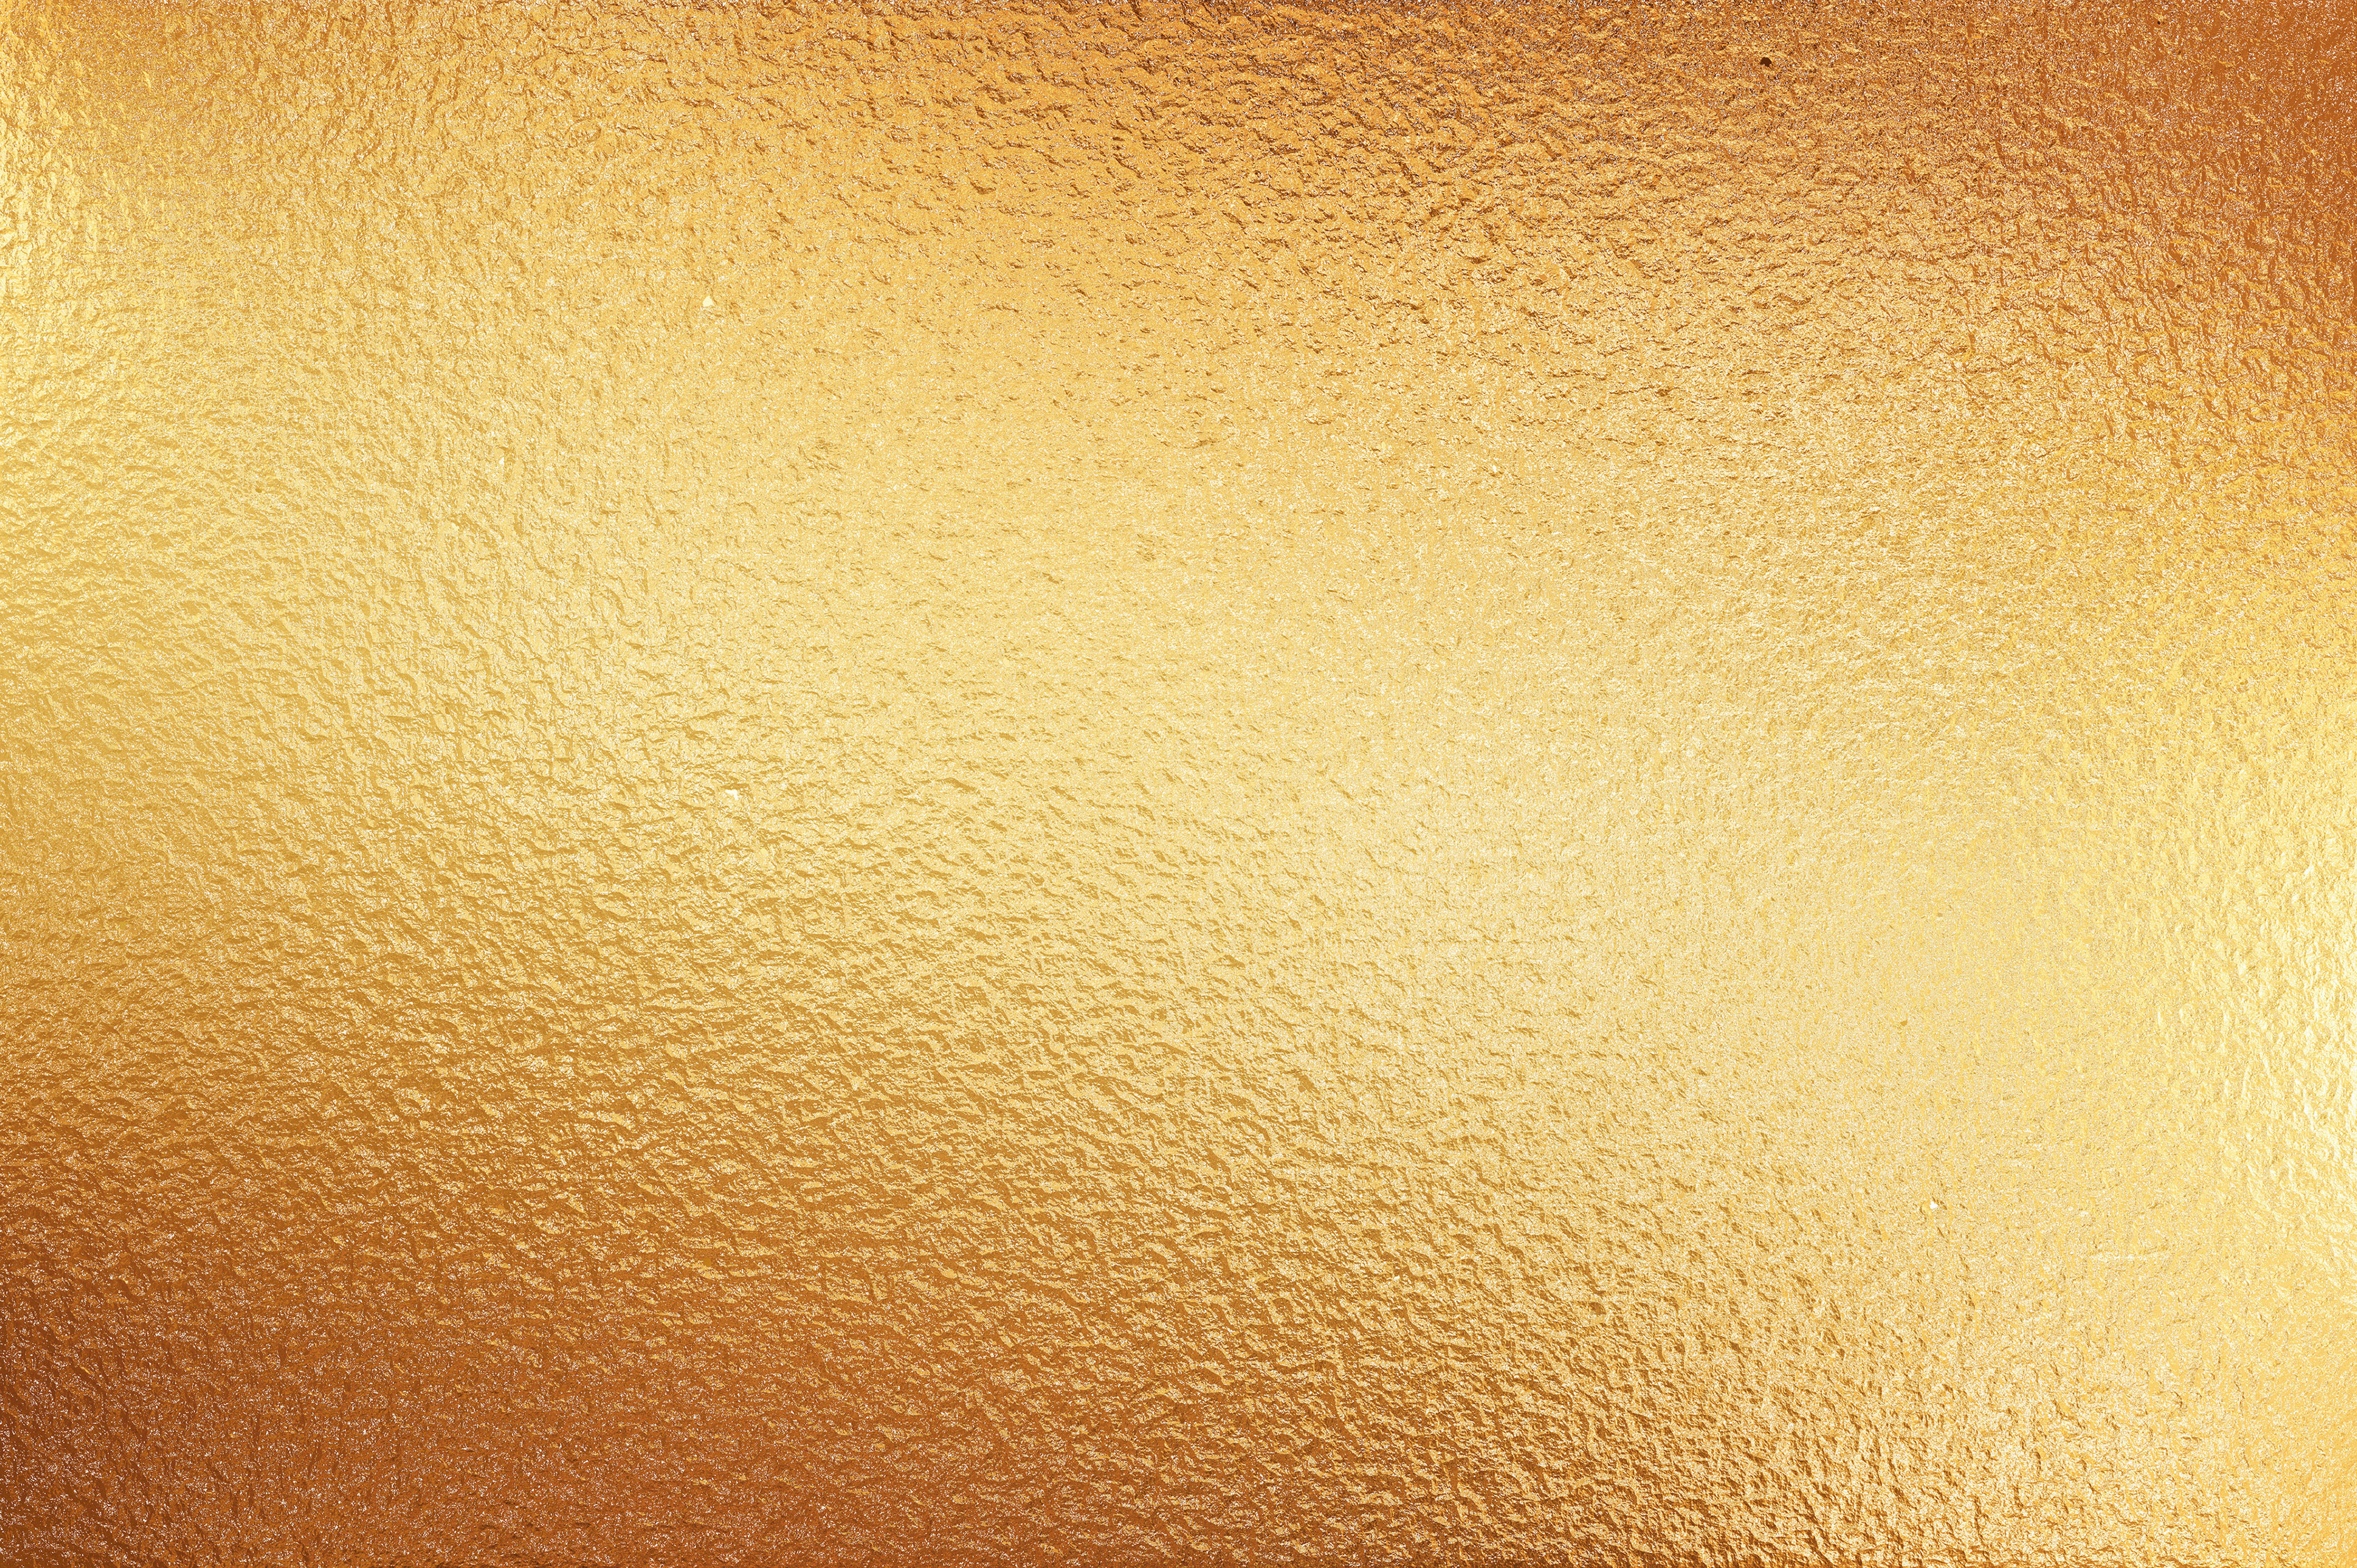 large sheet of gold metal foil texture background  #14054